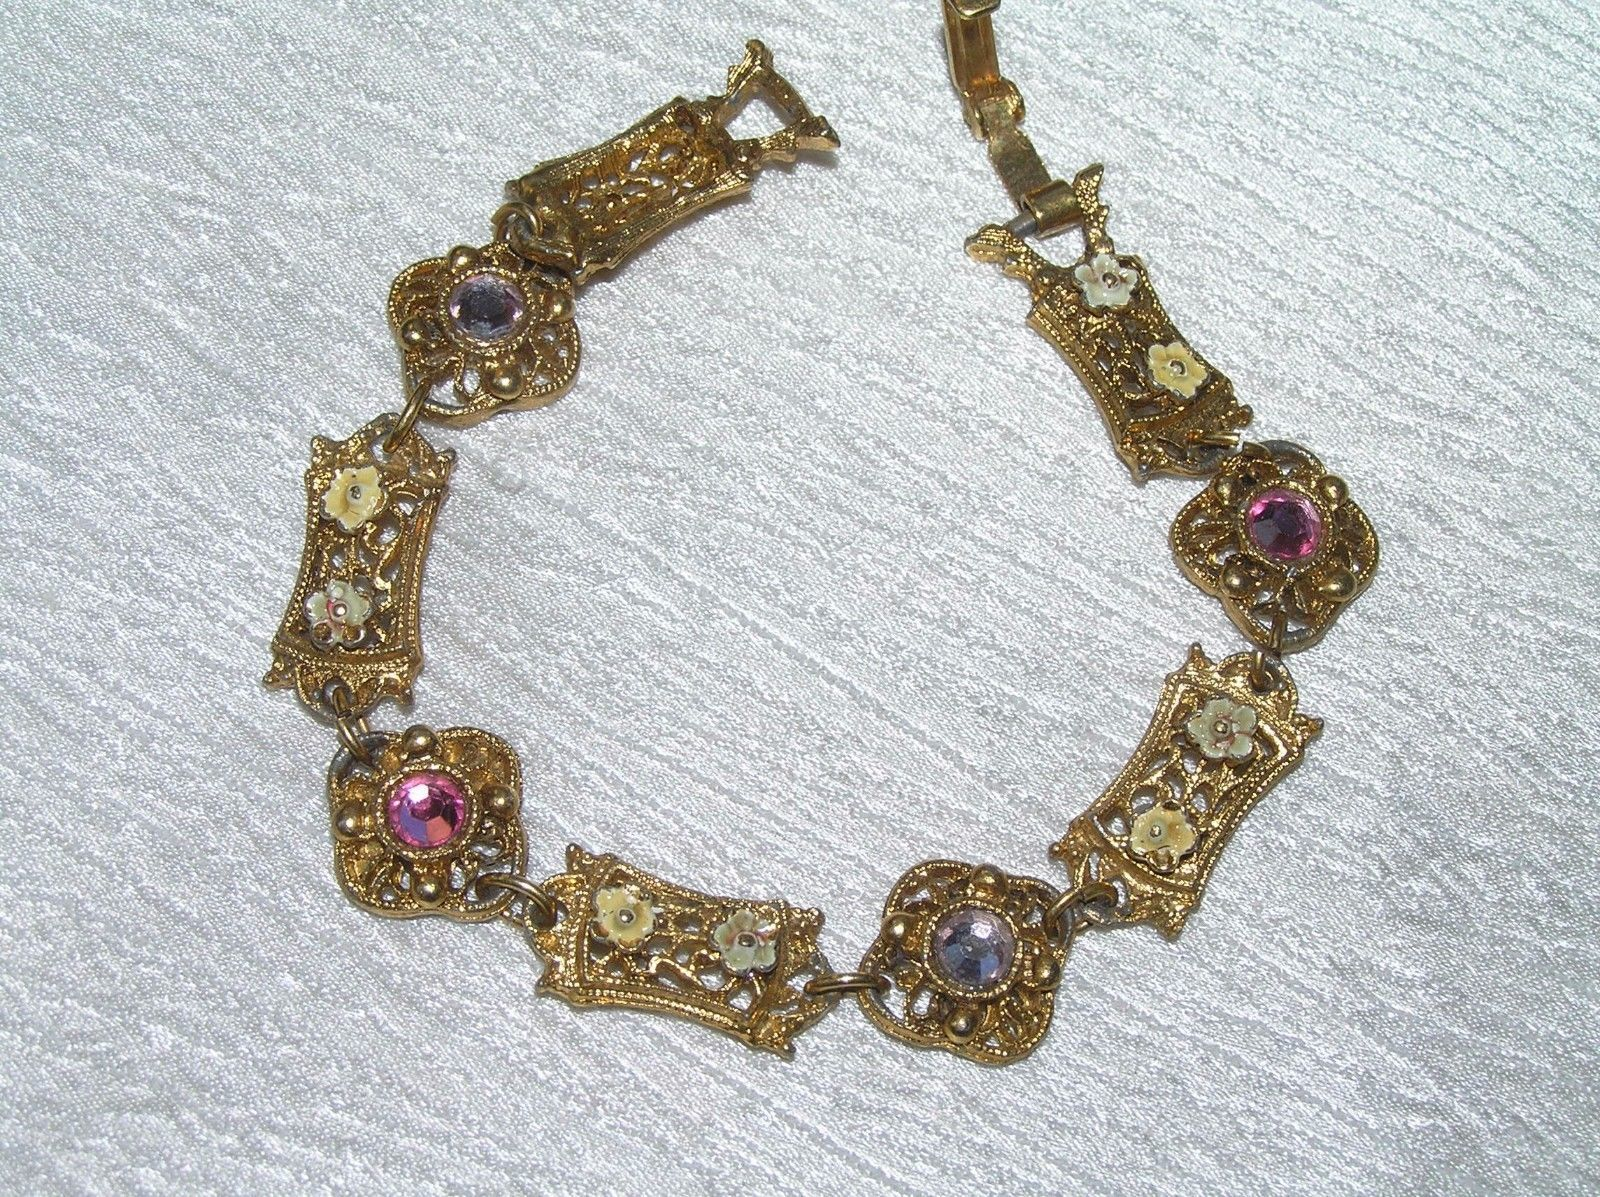 Vintage Victorian Reproduction Lacey Goldtone w Dainty Enamel Flowers & Pink